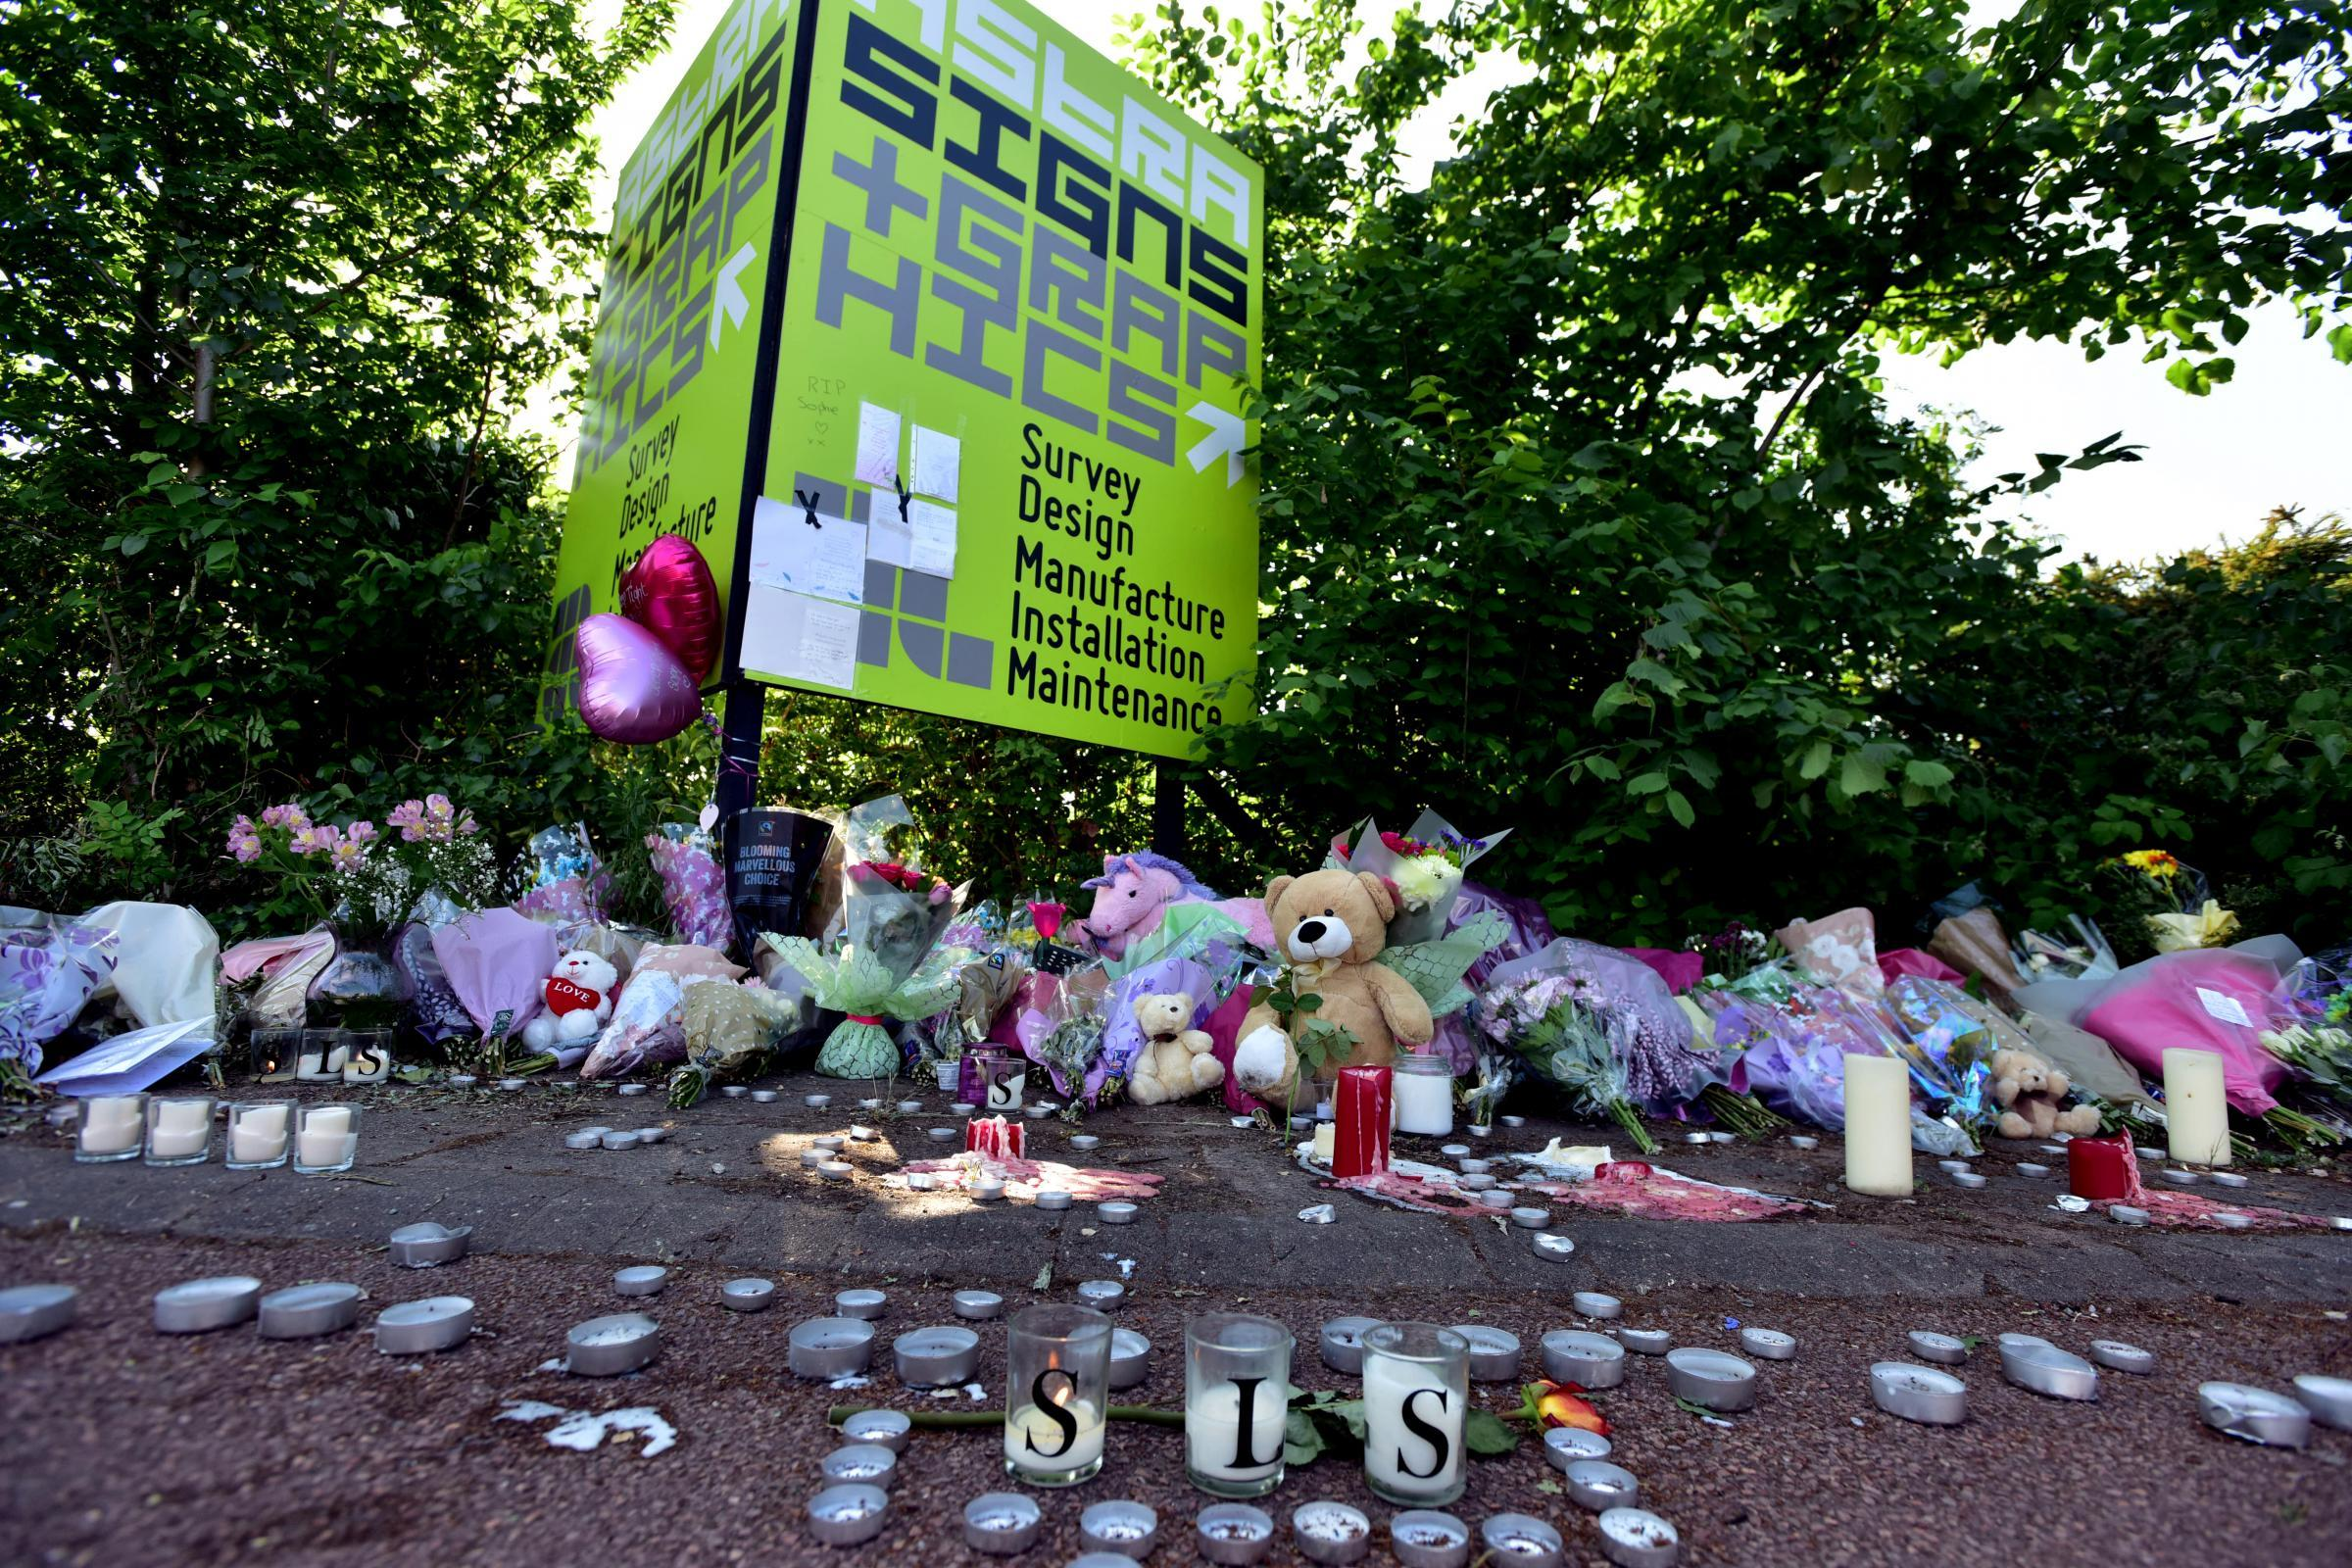 Crash site in Trafford Park where Sophie Smith, 19, was killed.